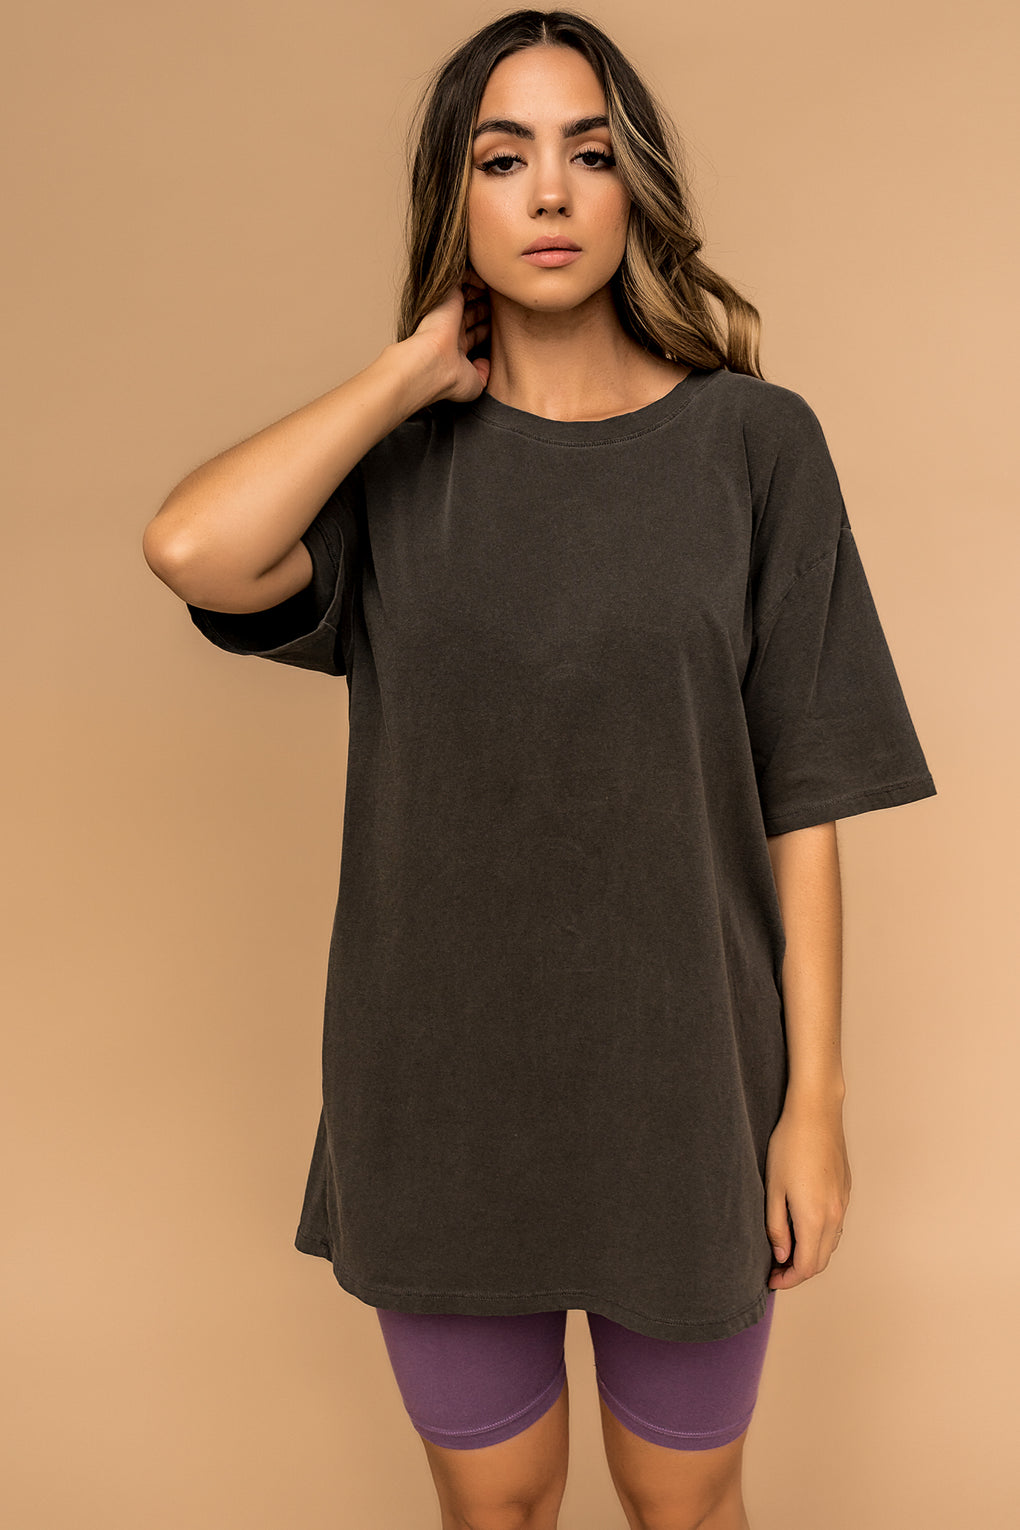 On The Weekends Oversized Tee in Charcoal